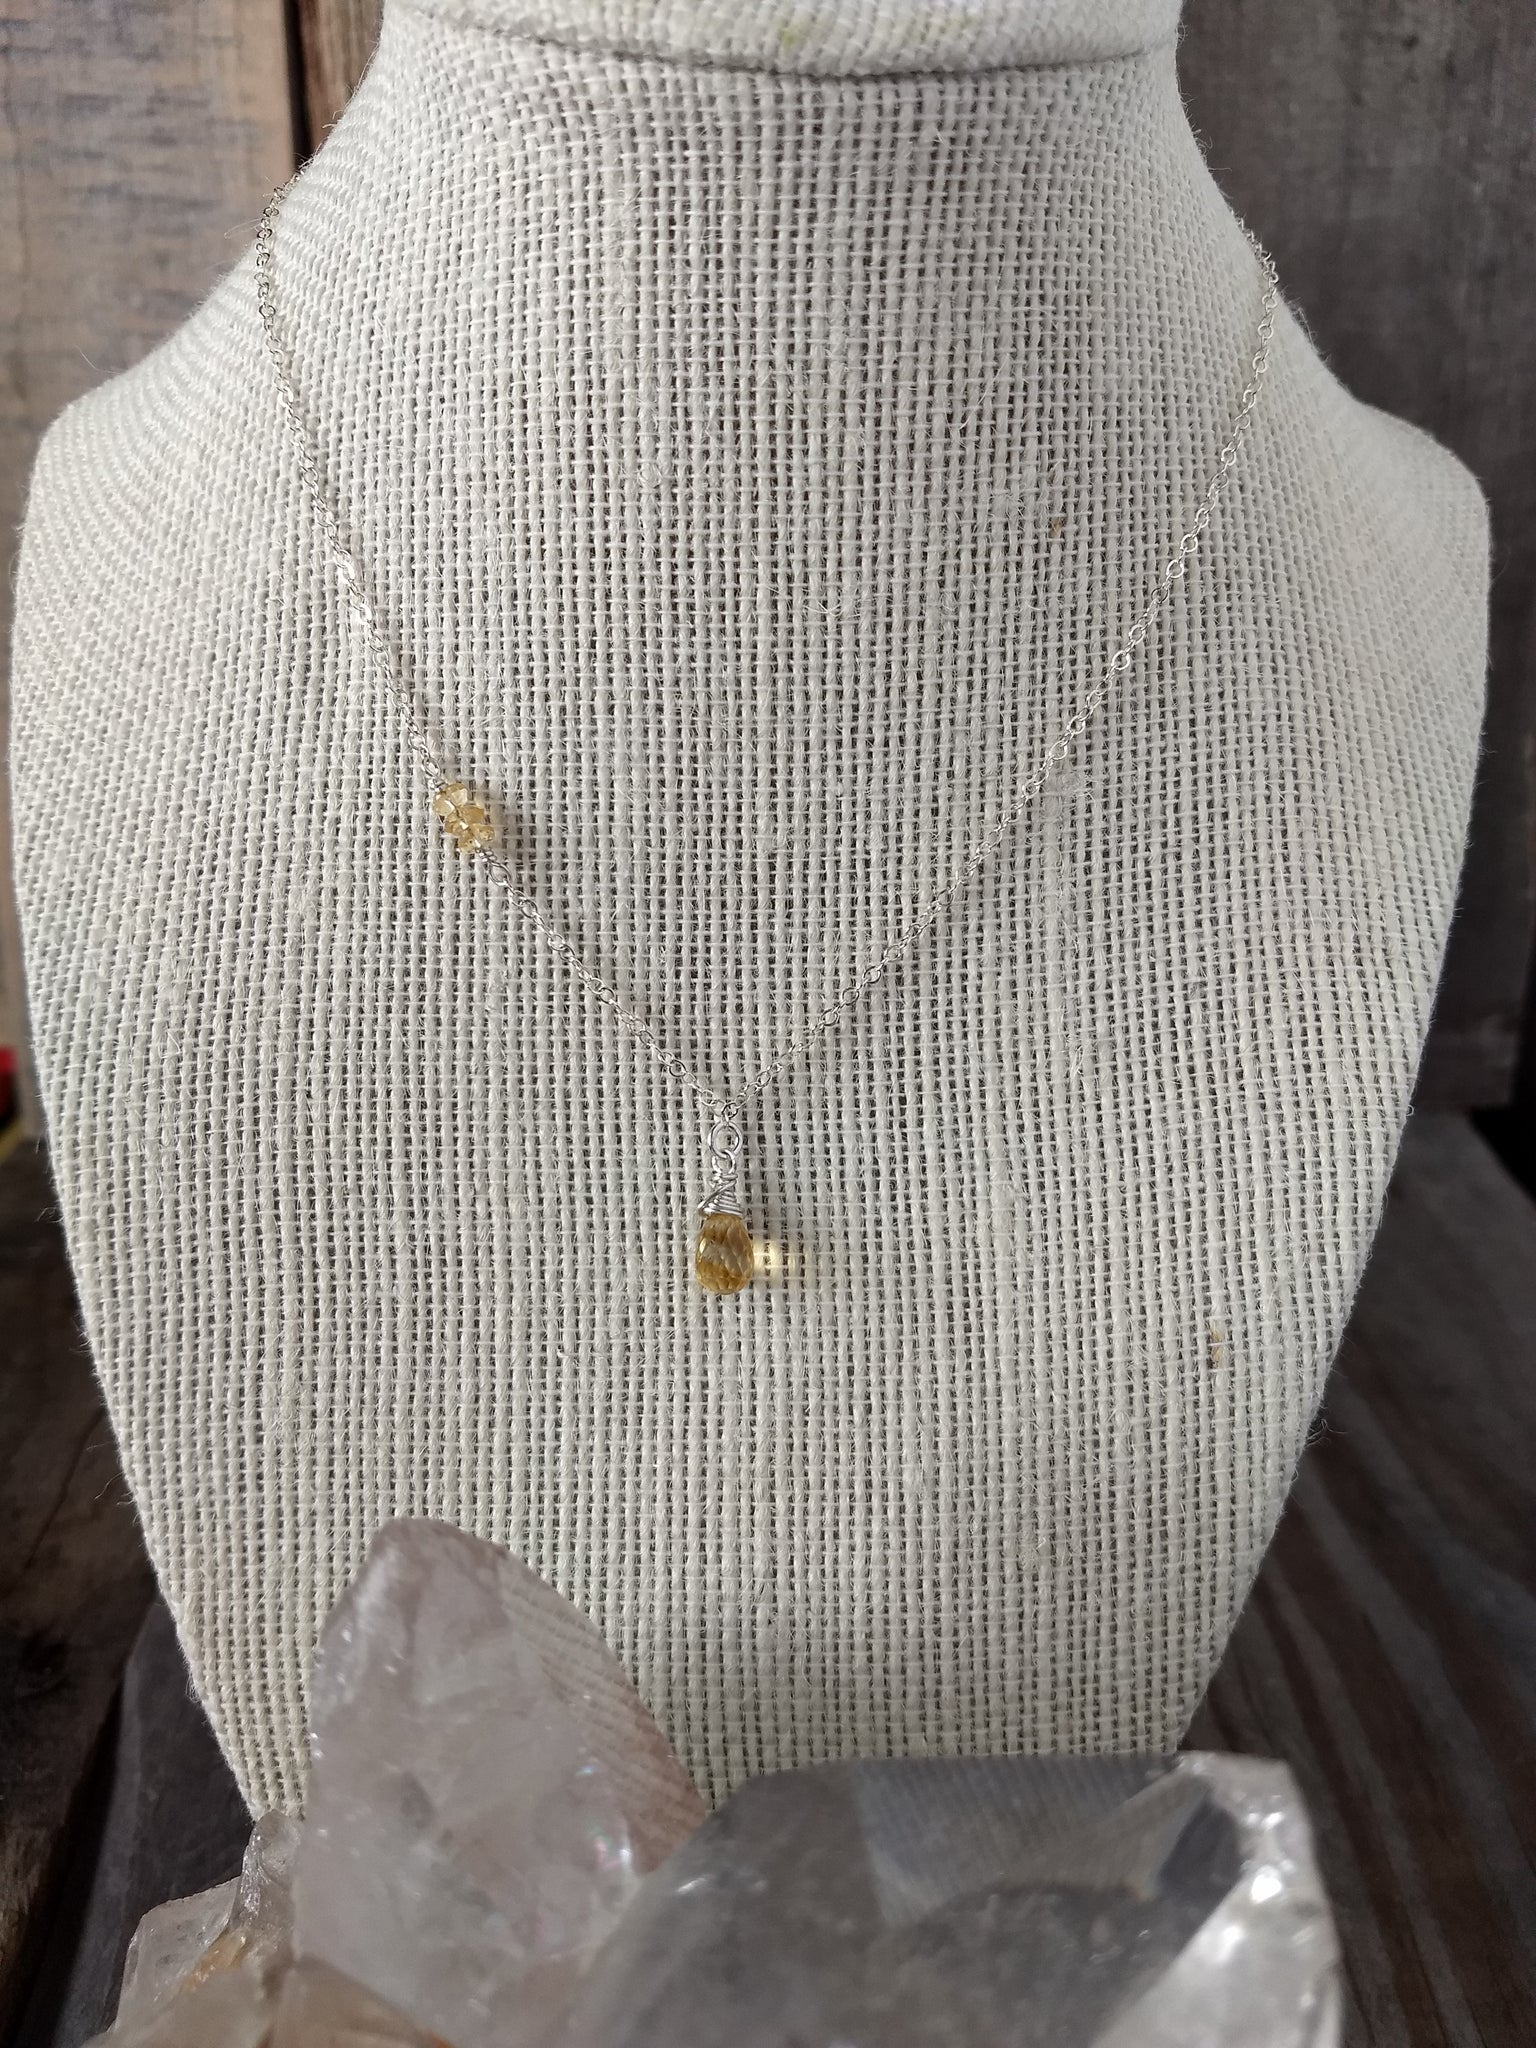 doux necklace | dainty gemstone necklace | citrine | sterling silver | Rare Soul jewelry